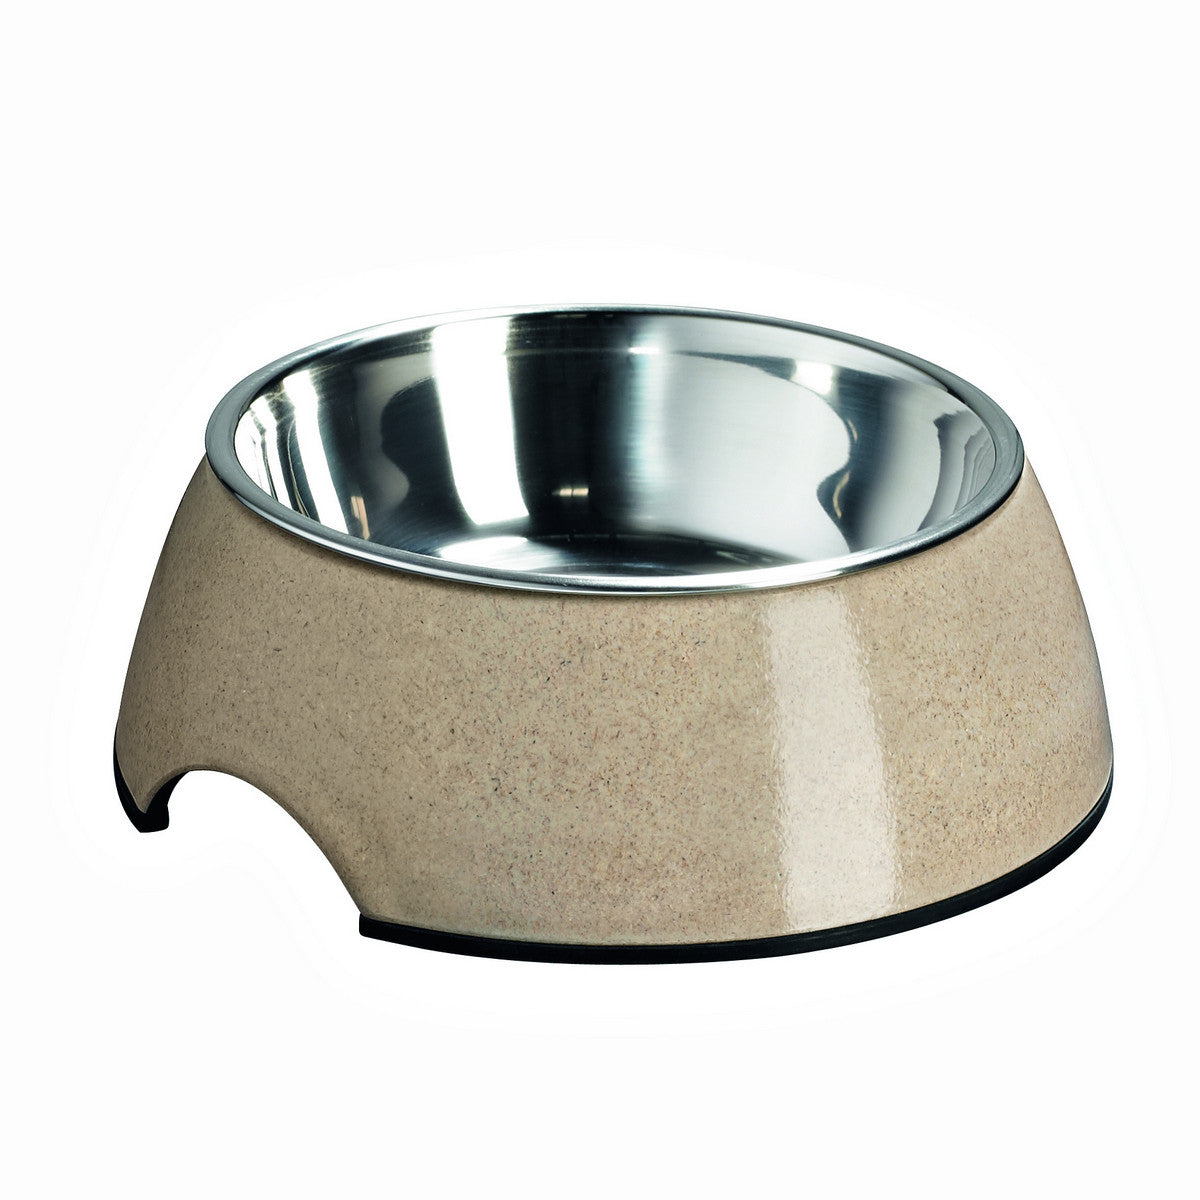 Melamine Bamboo Dog Bowl - Natural - Fernie's Choice Classic Country Wear for Dogs